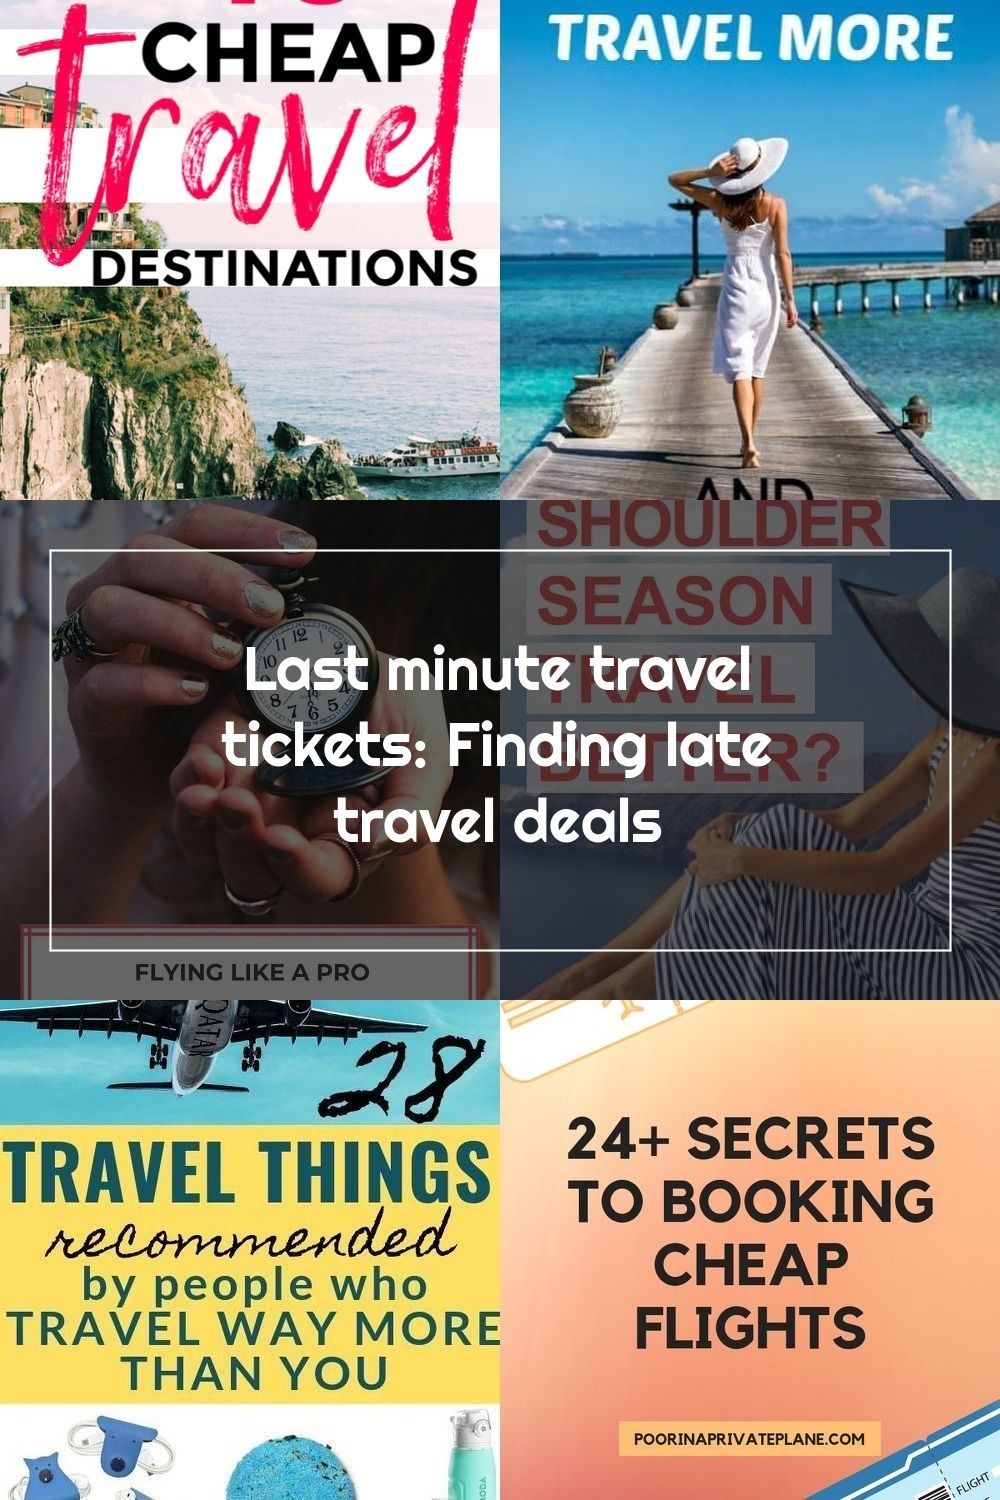 Searching for last minute travel deals? In this travel blog post you'll learn travel tips to save money through last minute tickets. Uncover travel hacks to save on last-minute travel and find out how to become a flexible traveler who is ready to pack their bags and fly out in no time. Flights aren't that hard to secure in a short time frame, and last minute travel can save you tons of money in the long run. So take advantage of it! #travelbunny #lastminute #traveltips #travelhacks #traveldeals